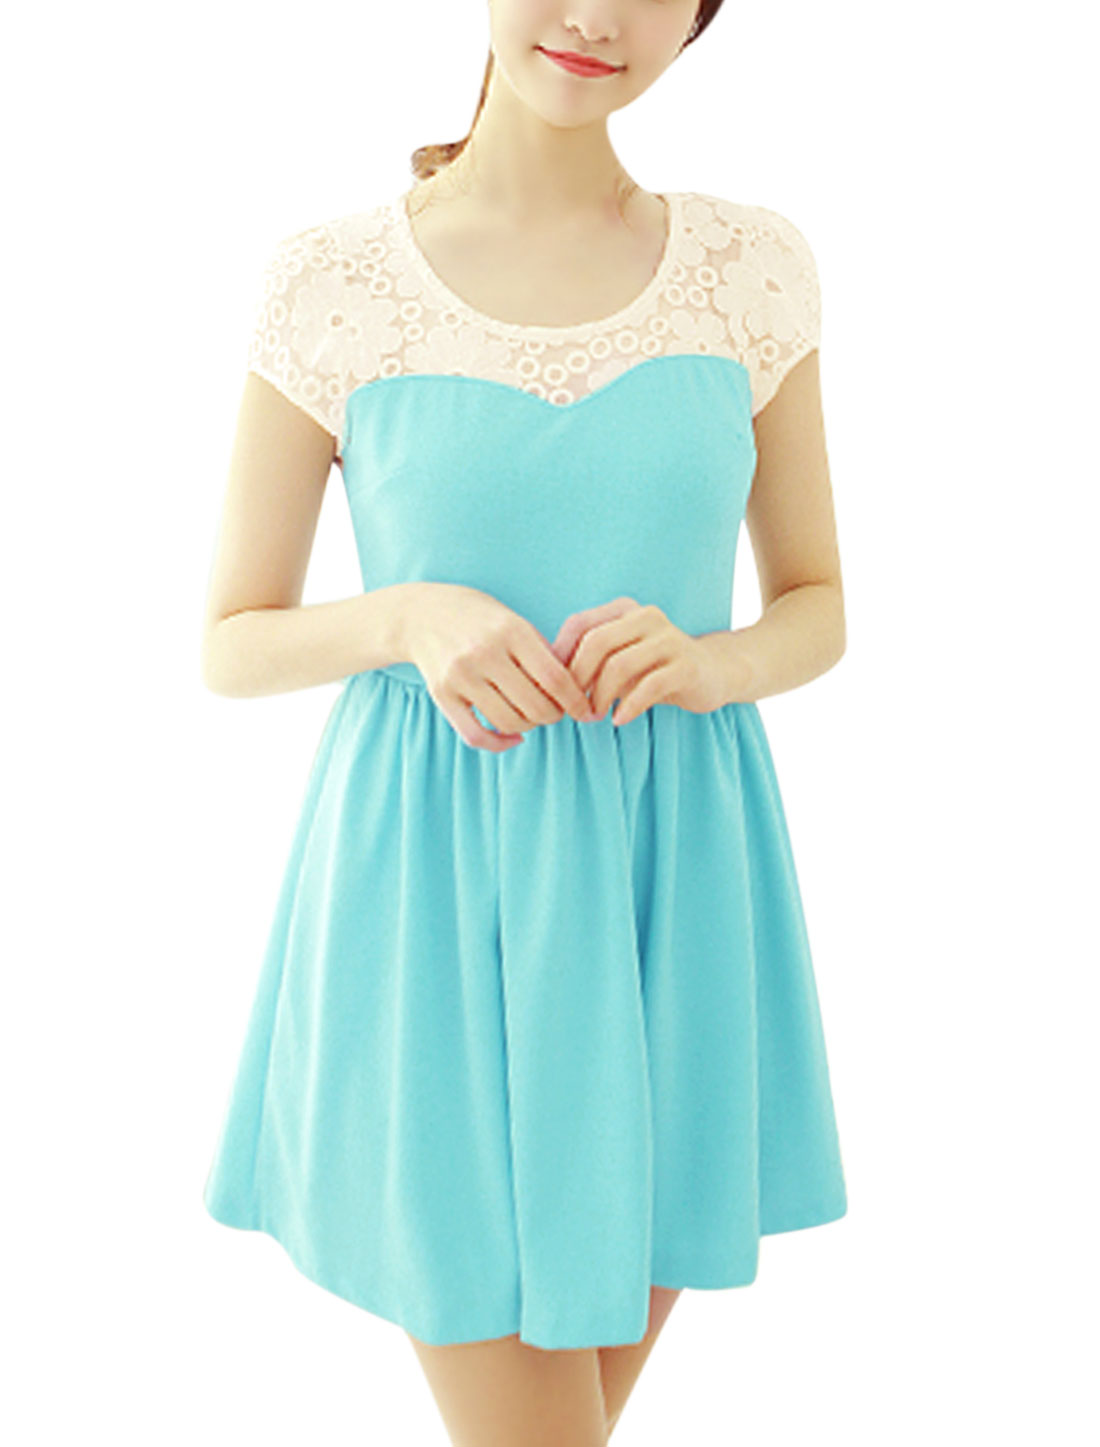 Women Mesh Panel Floral Embroidery Short Sleeves Mini Dress Aqua XS